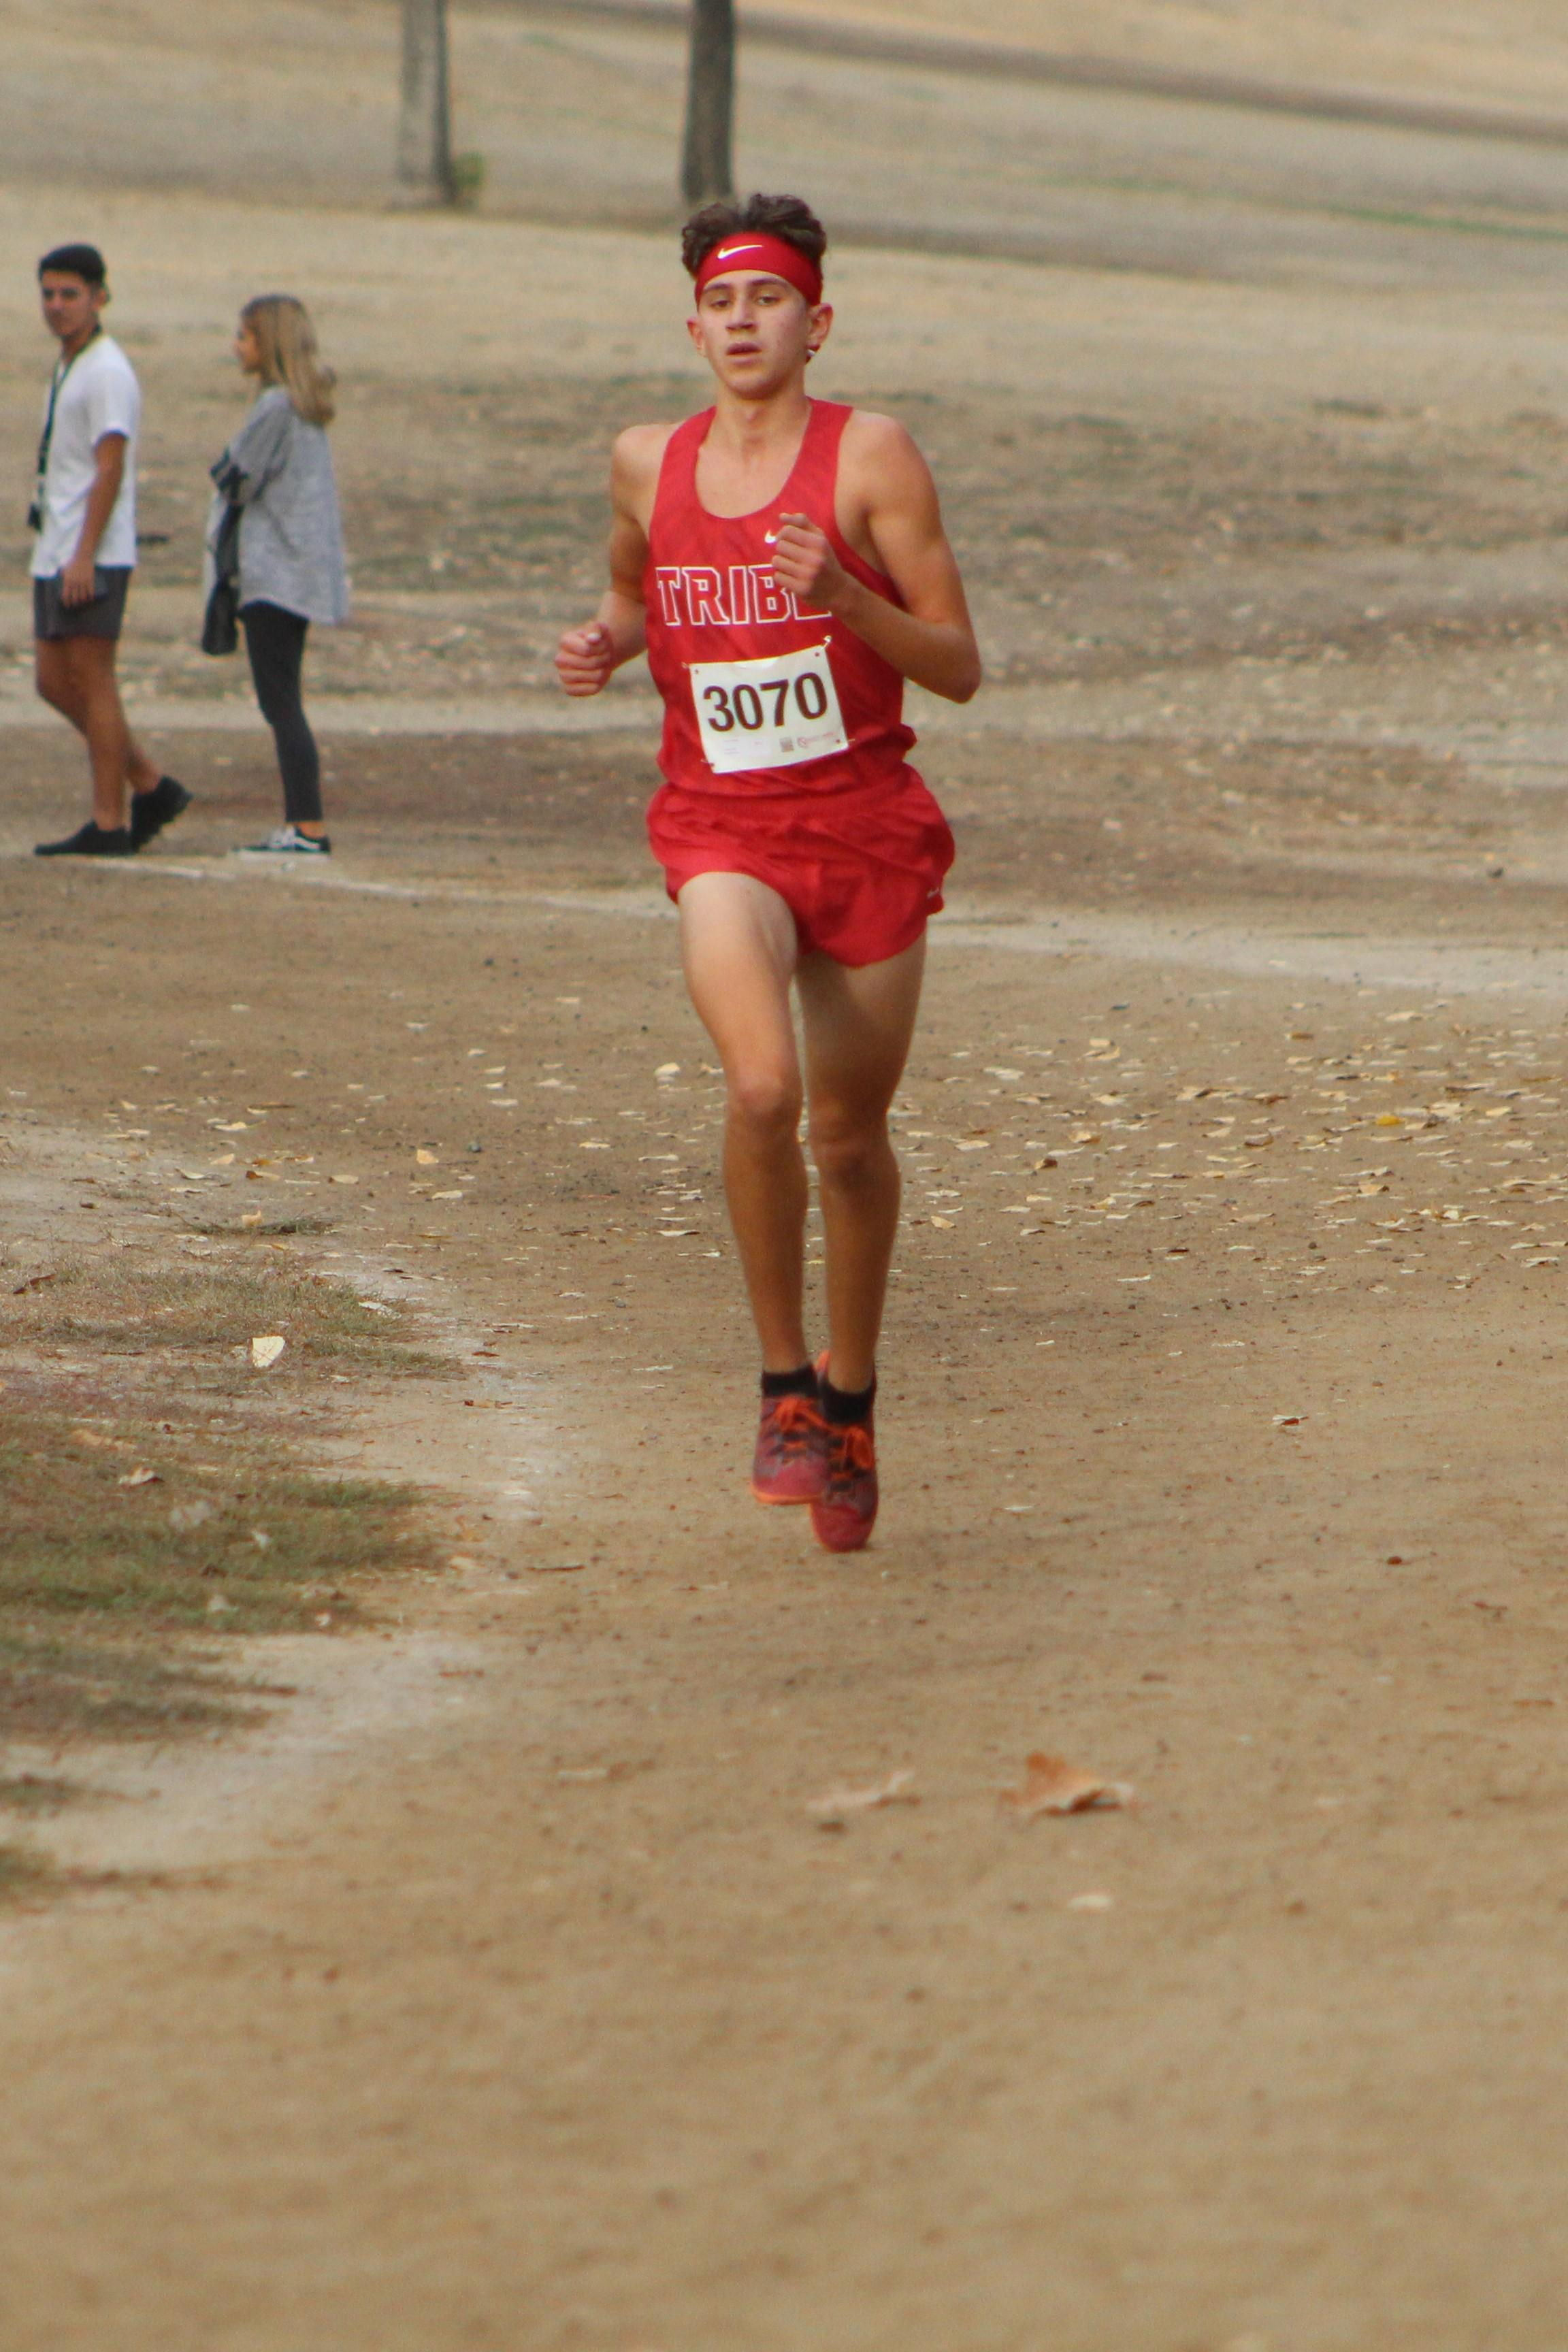 Connor Borba Leads the race